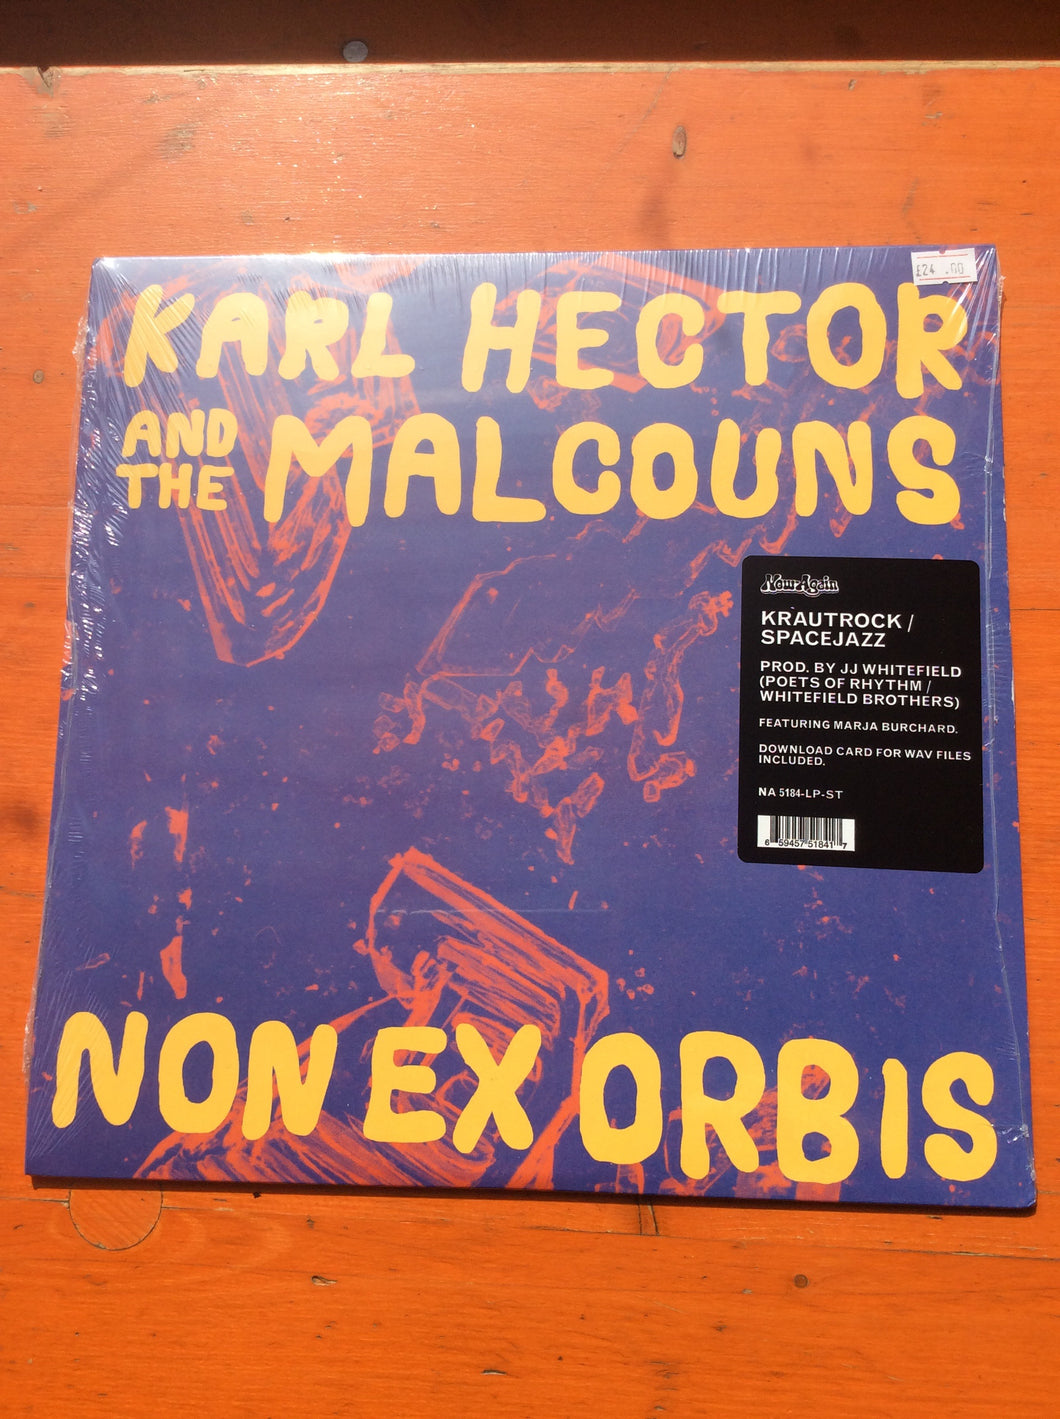 Karl Hector And The Malcouns - Non Ex Orbis